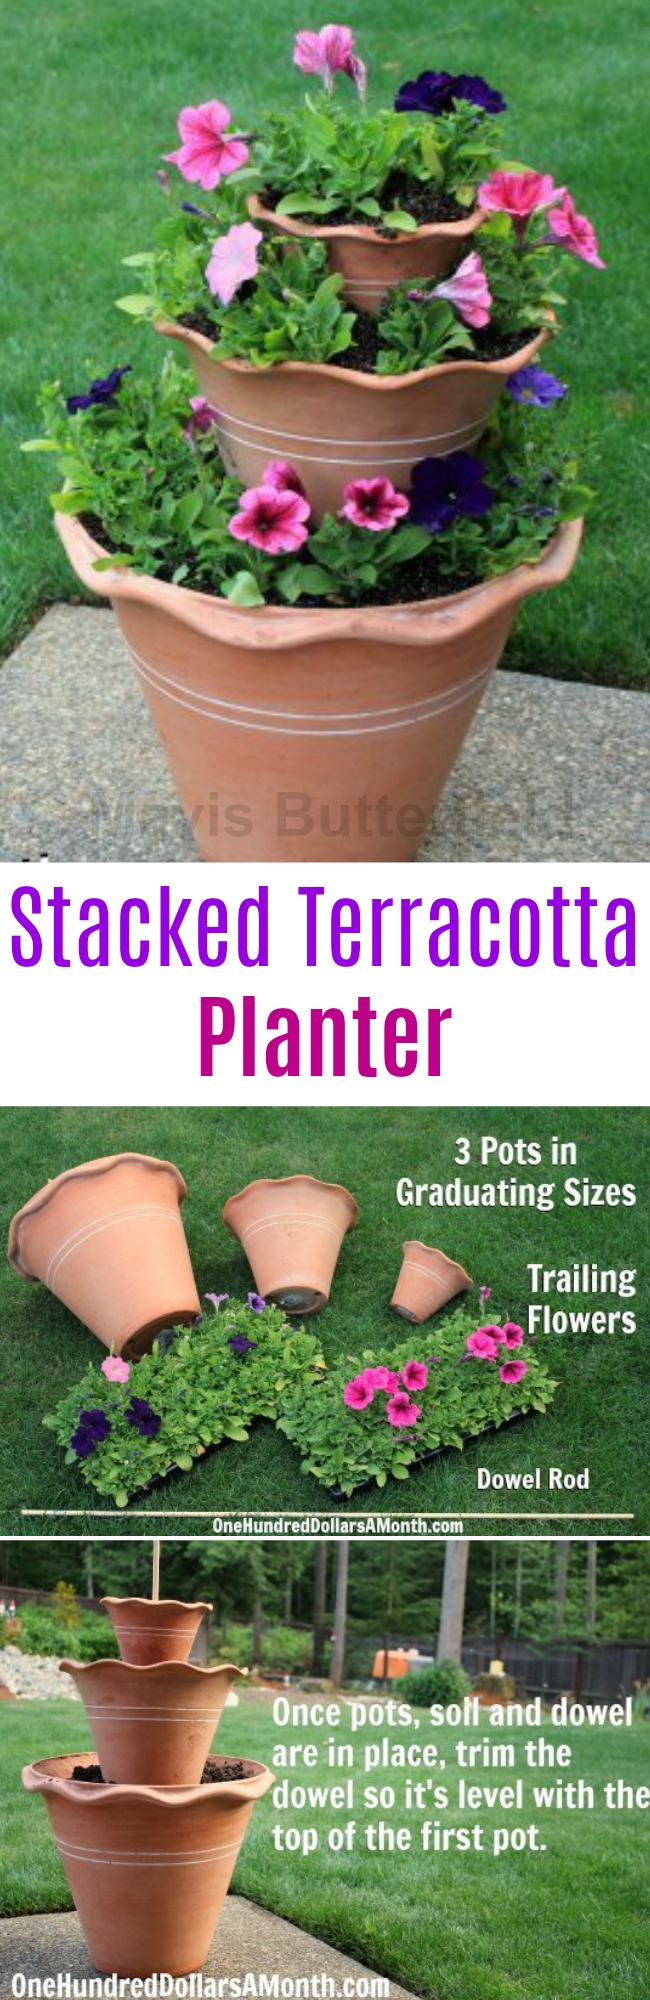 Container Gardening – DIY Stacked Terra Cotta Planter